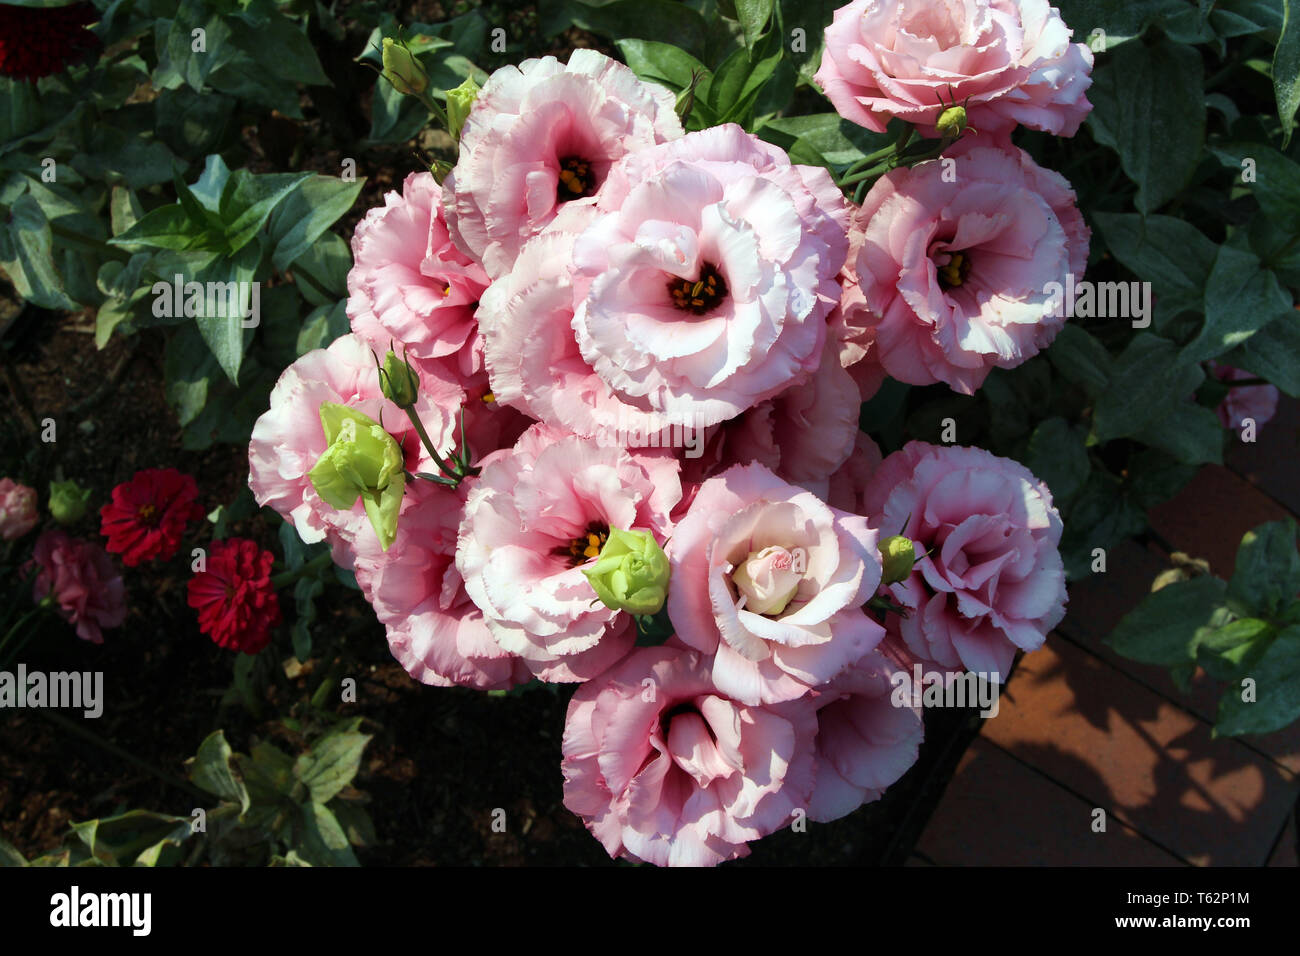 Close up of pink Lisianthus flowers in varying stages of bloom - Stock Image